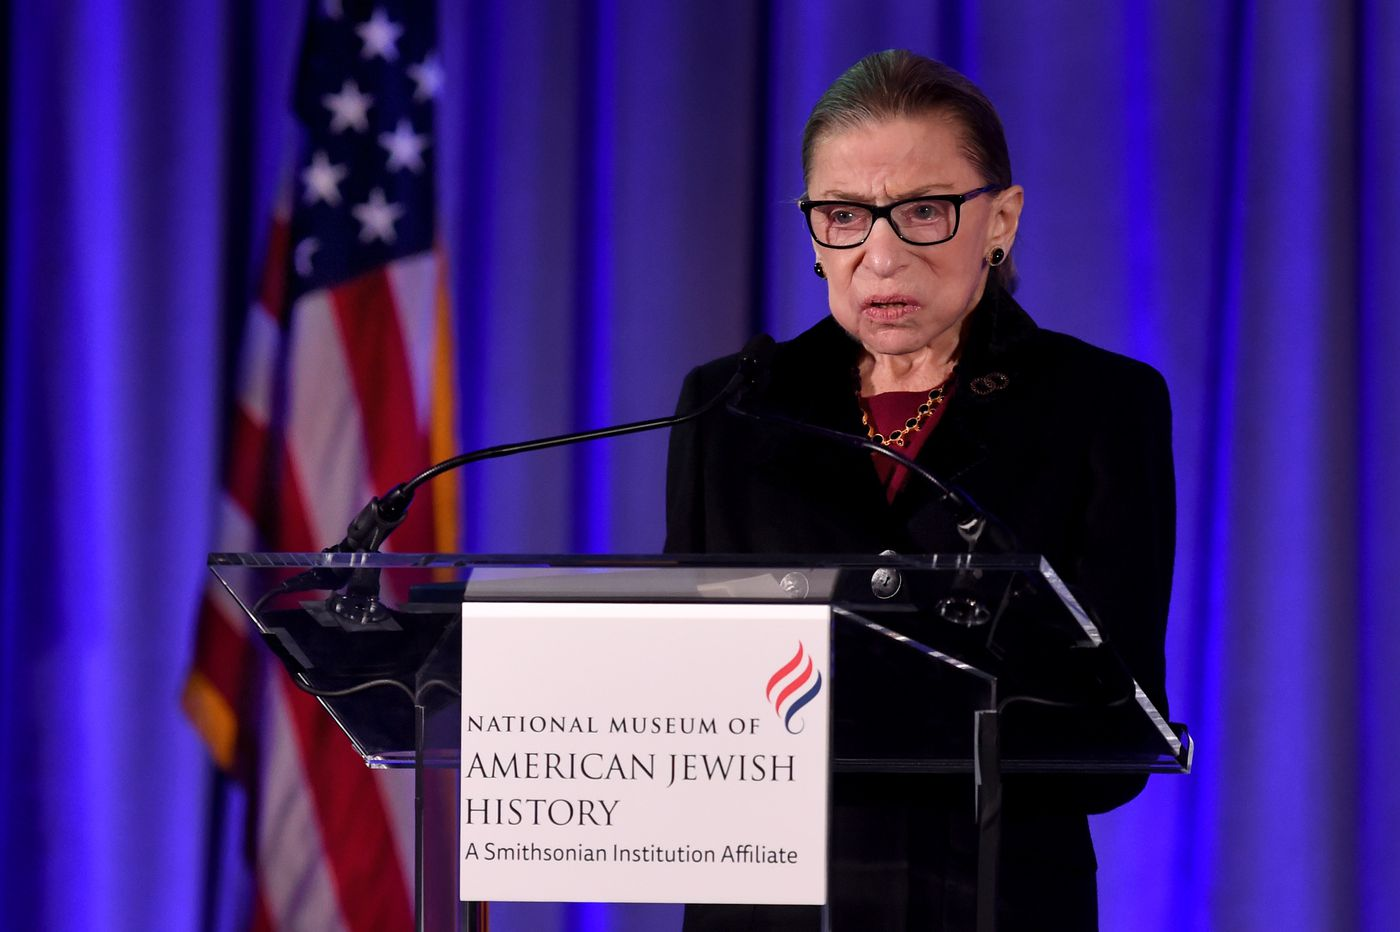 Justice Ruth Bader Ginsburg says her Philadelphia honor is 'pure joy'